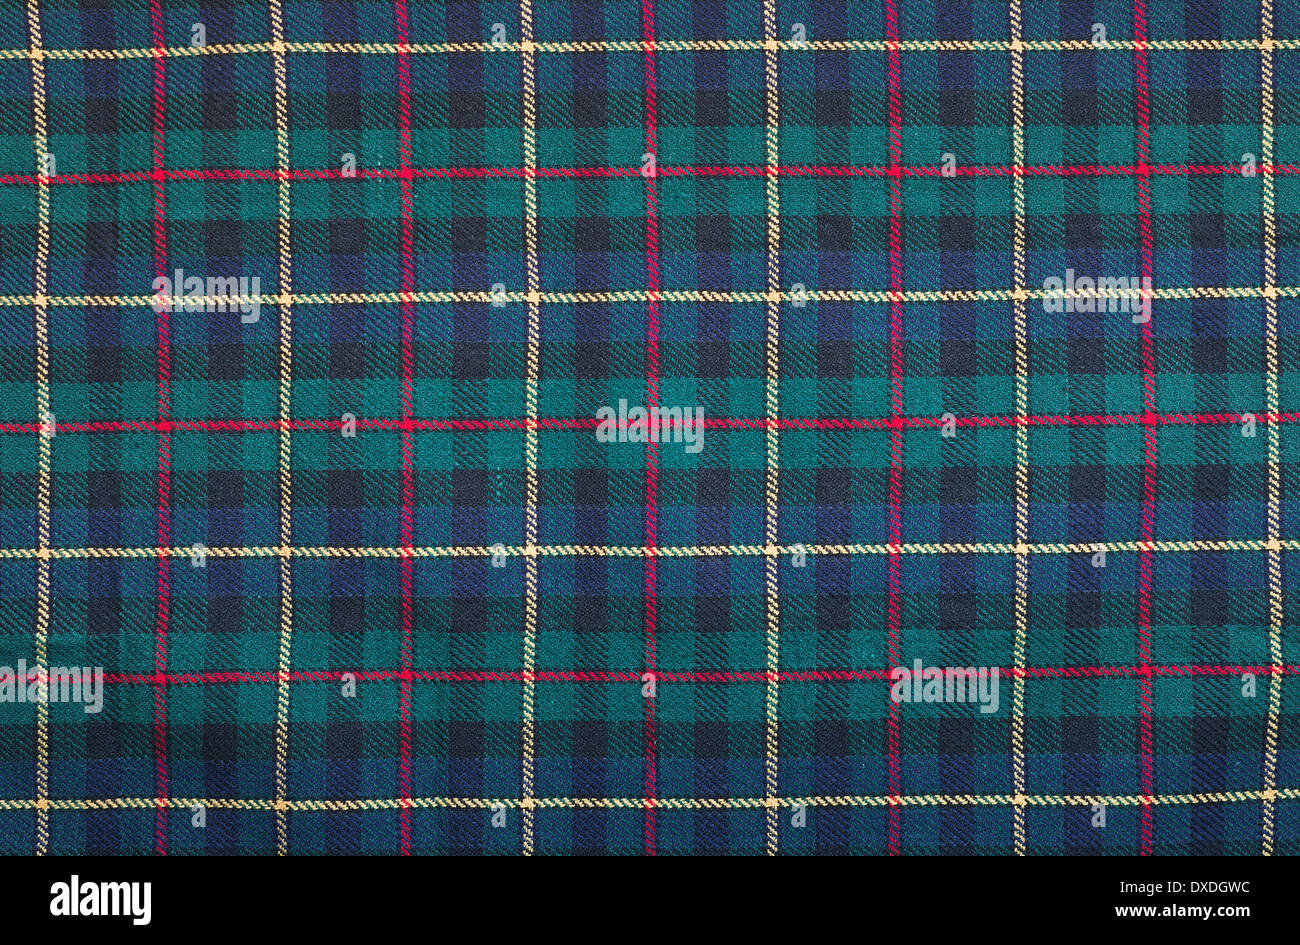 b47fc4868f43a Scottish tartan background a checked plaid weave pattern with red ...